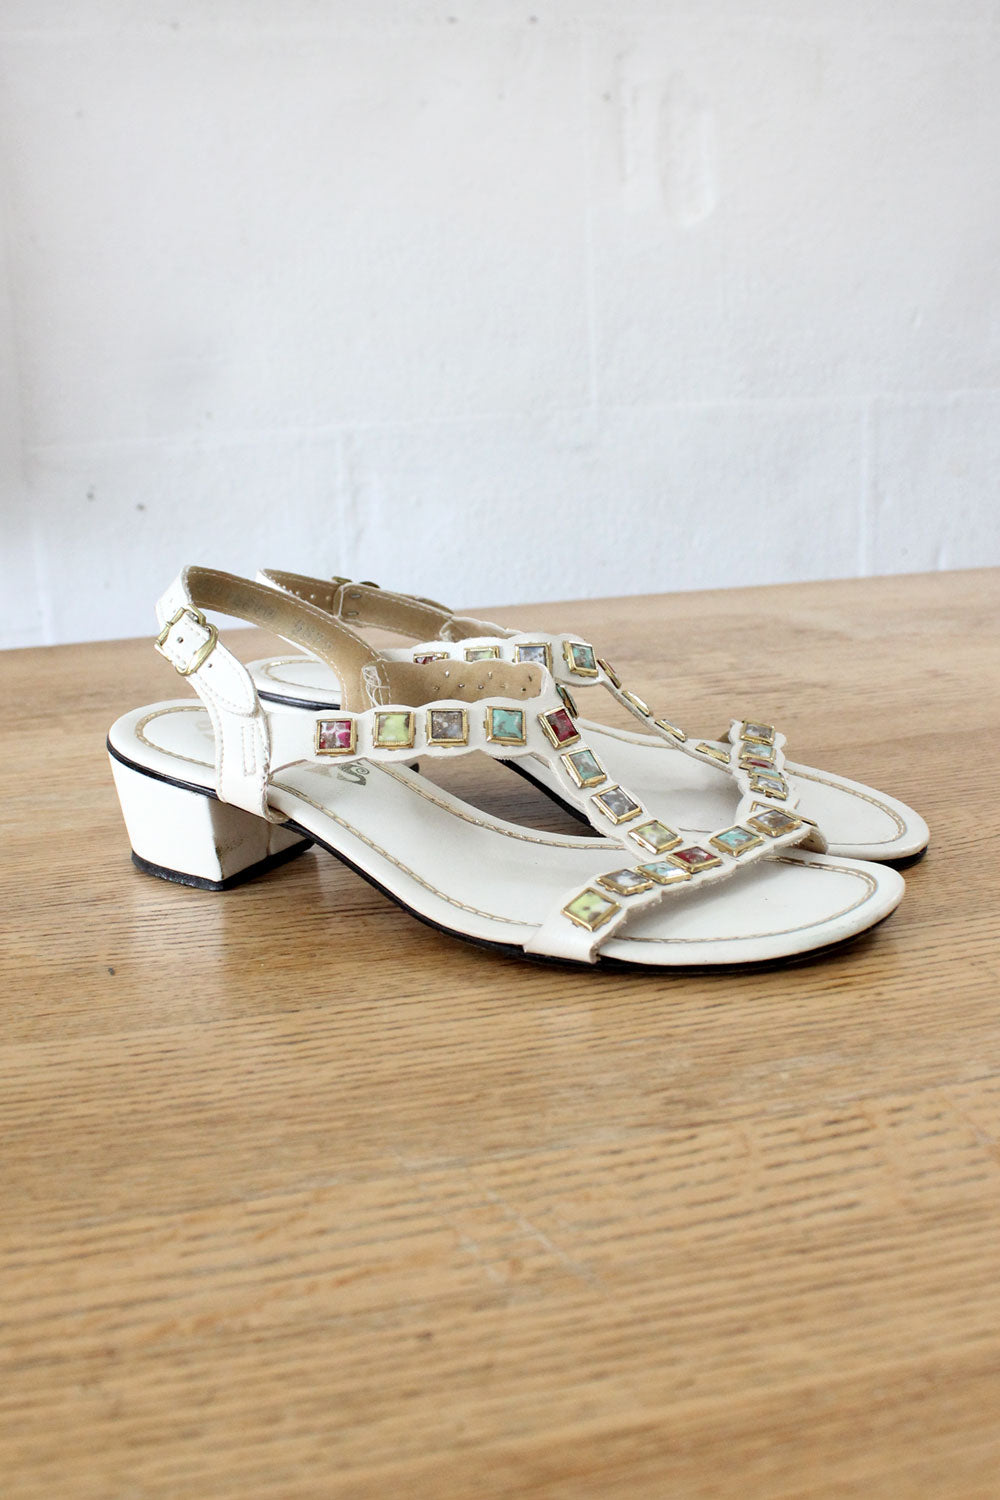 Bejeweled T-strap Sandals 6 1/2